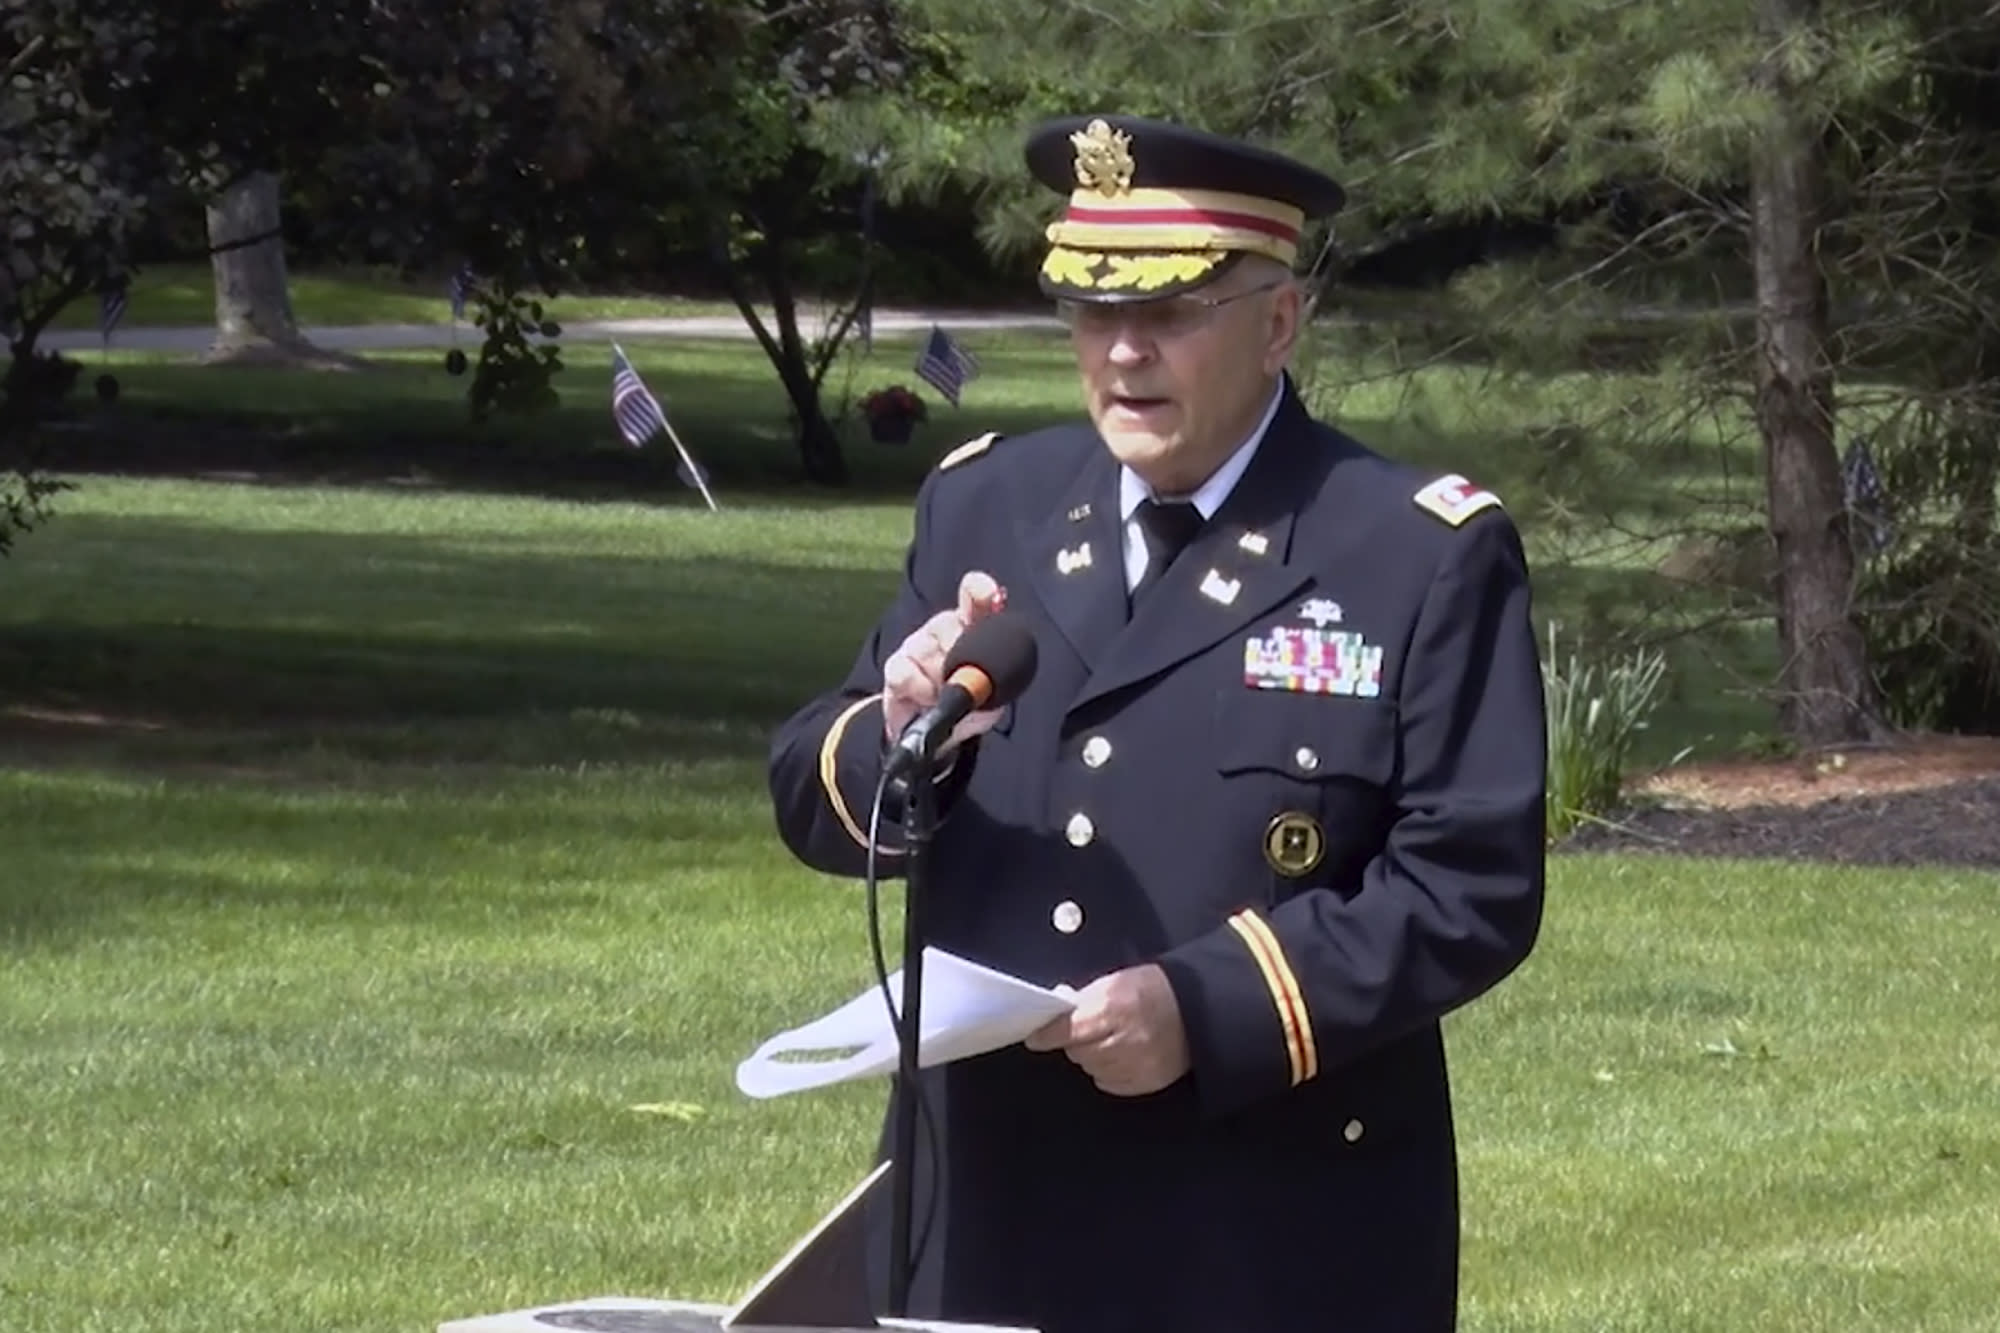 Another official resigns over censored Memorial Day speech